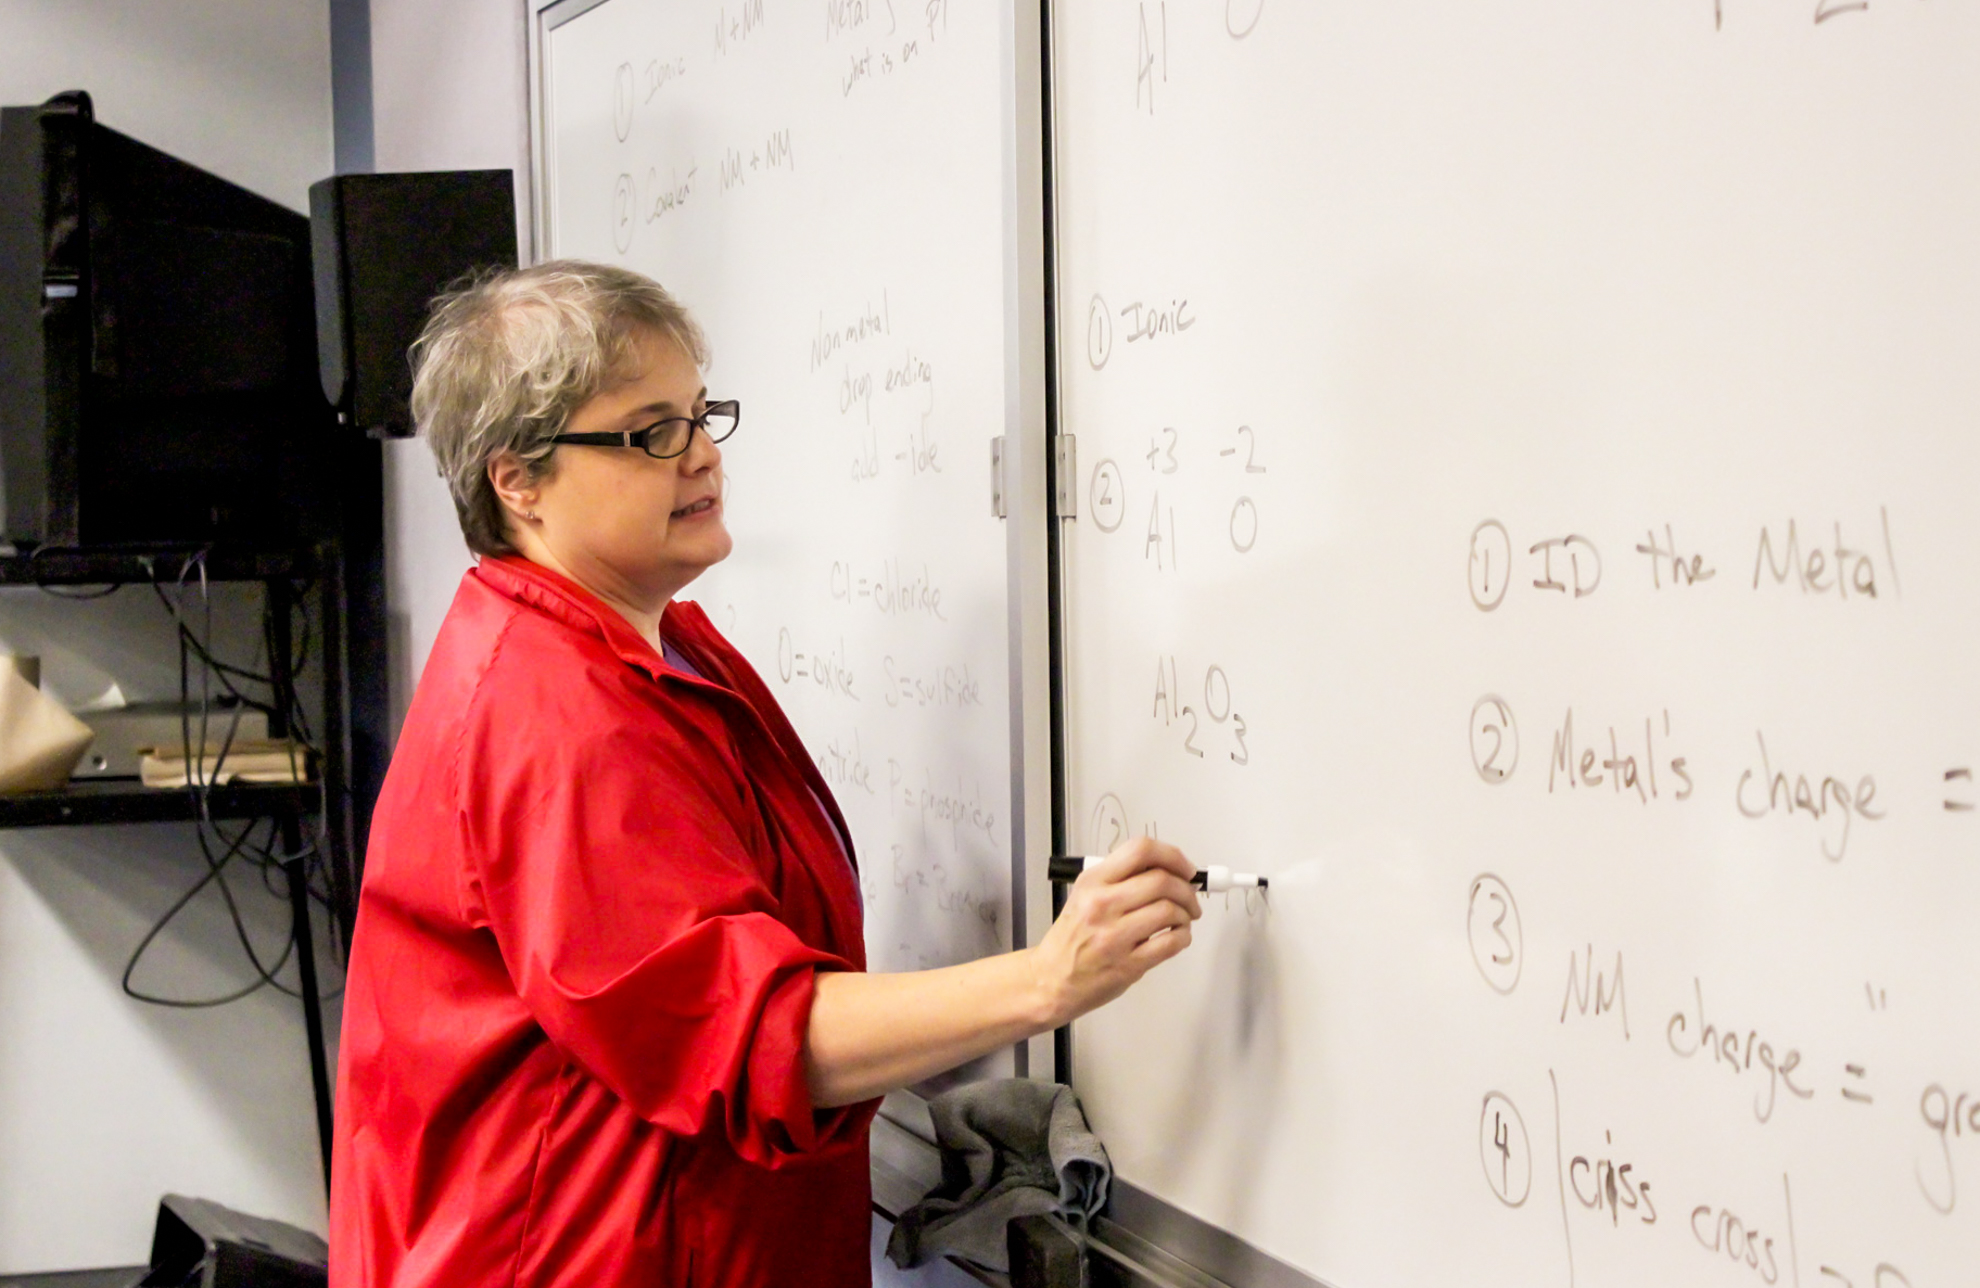 A teacher at a whiteboard